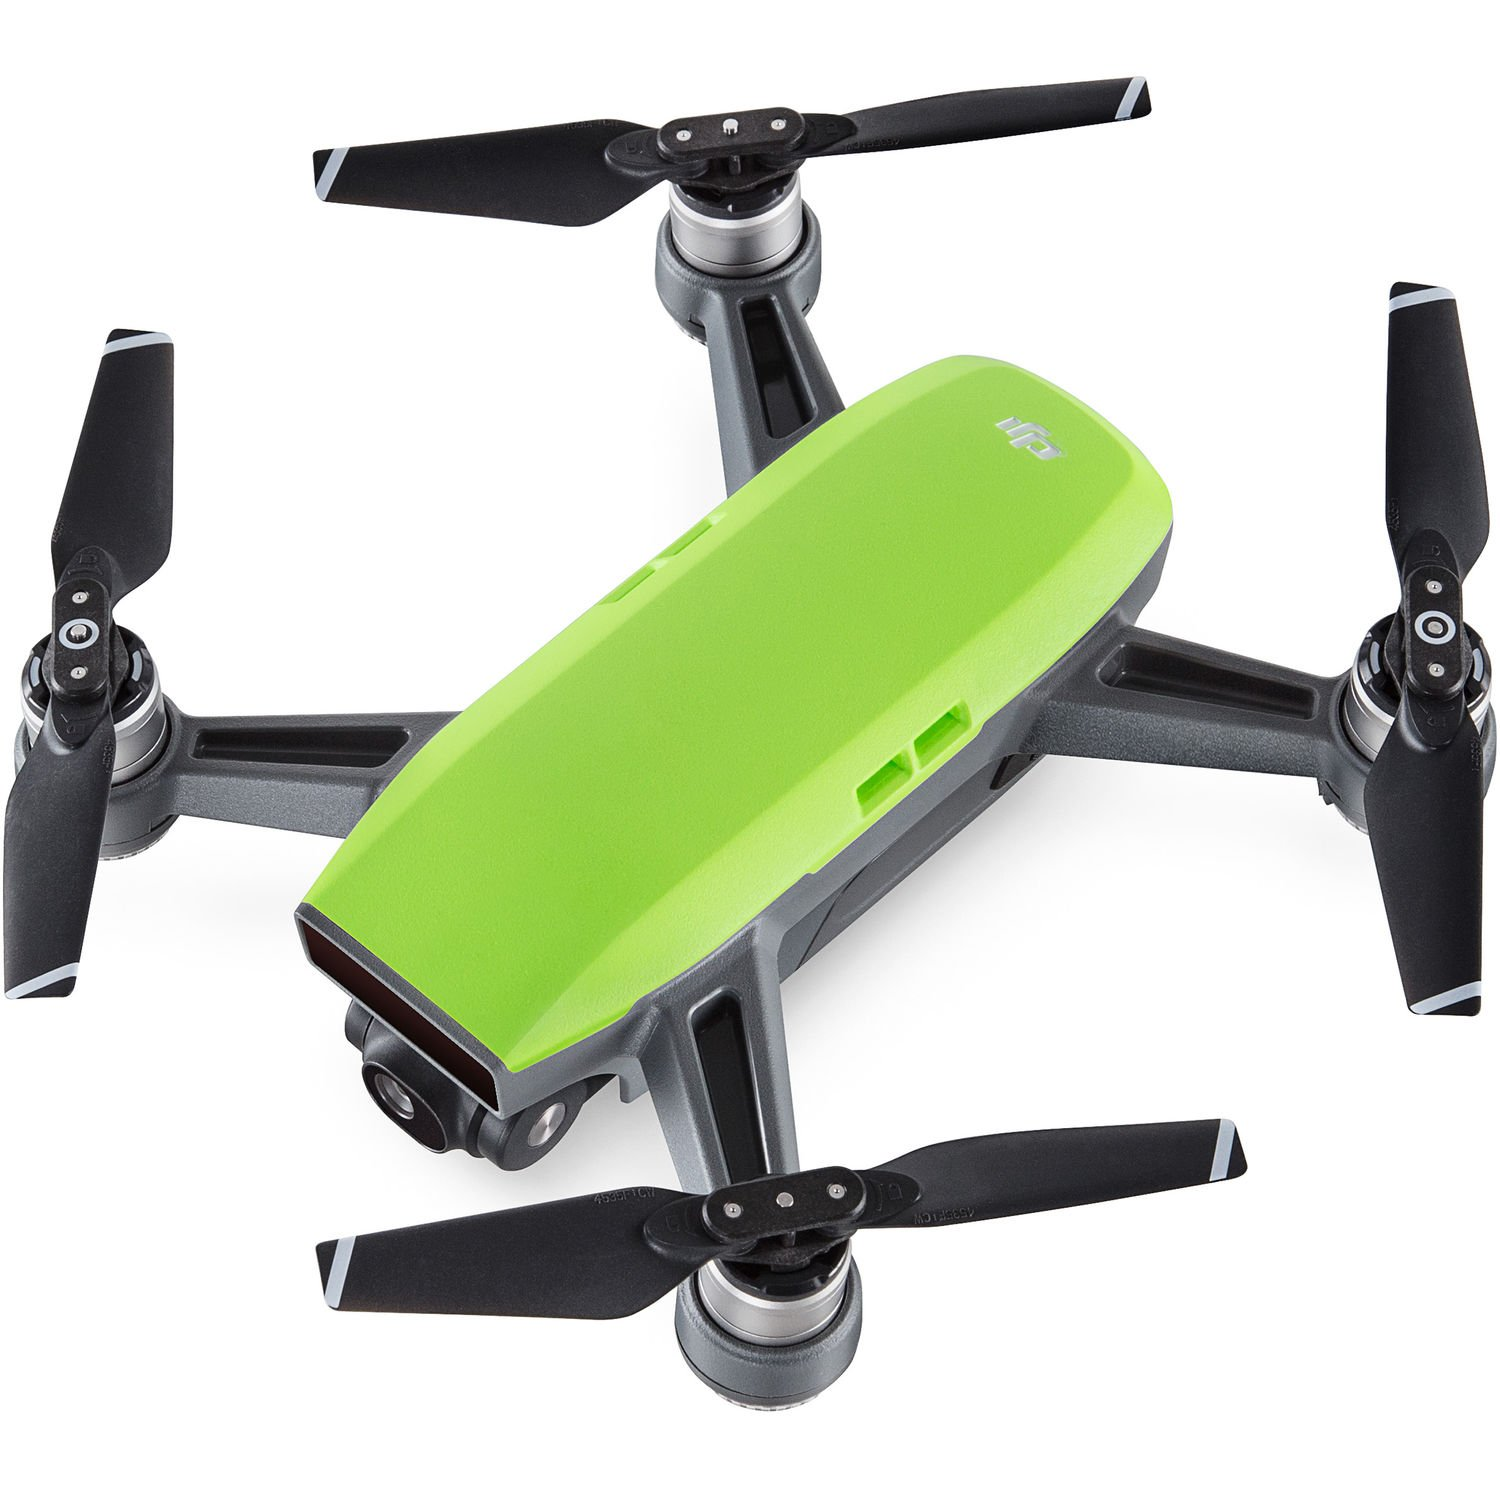 DJI SPARK Fly More Combo - Meadow Green version